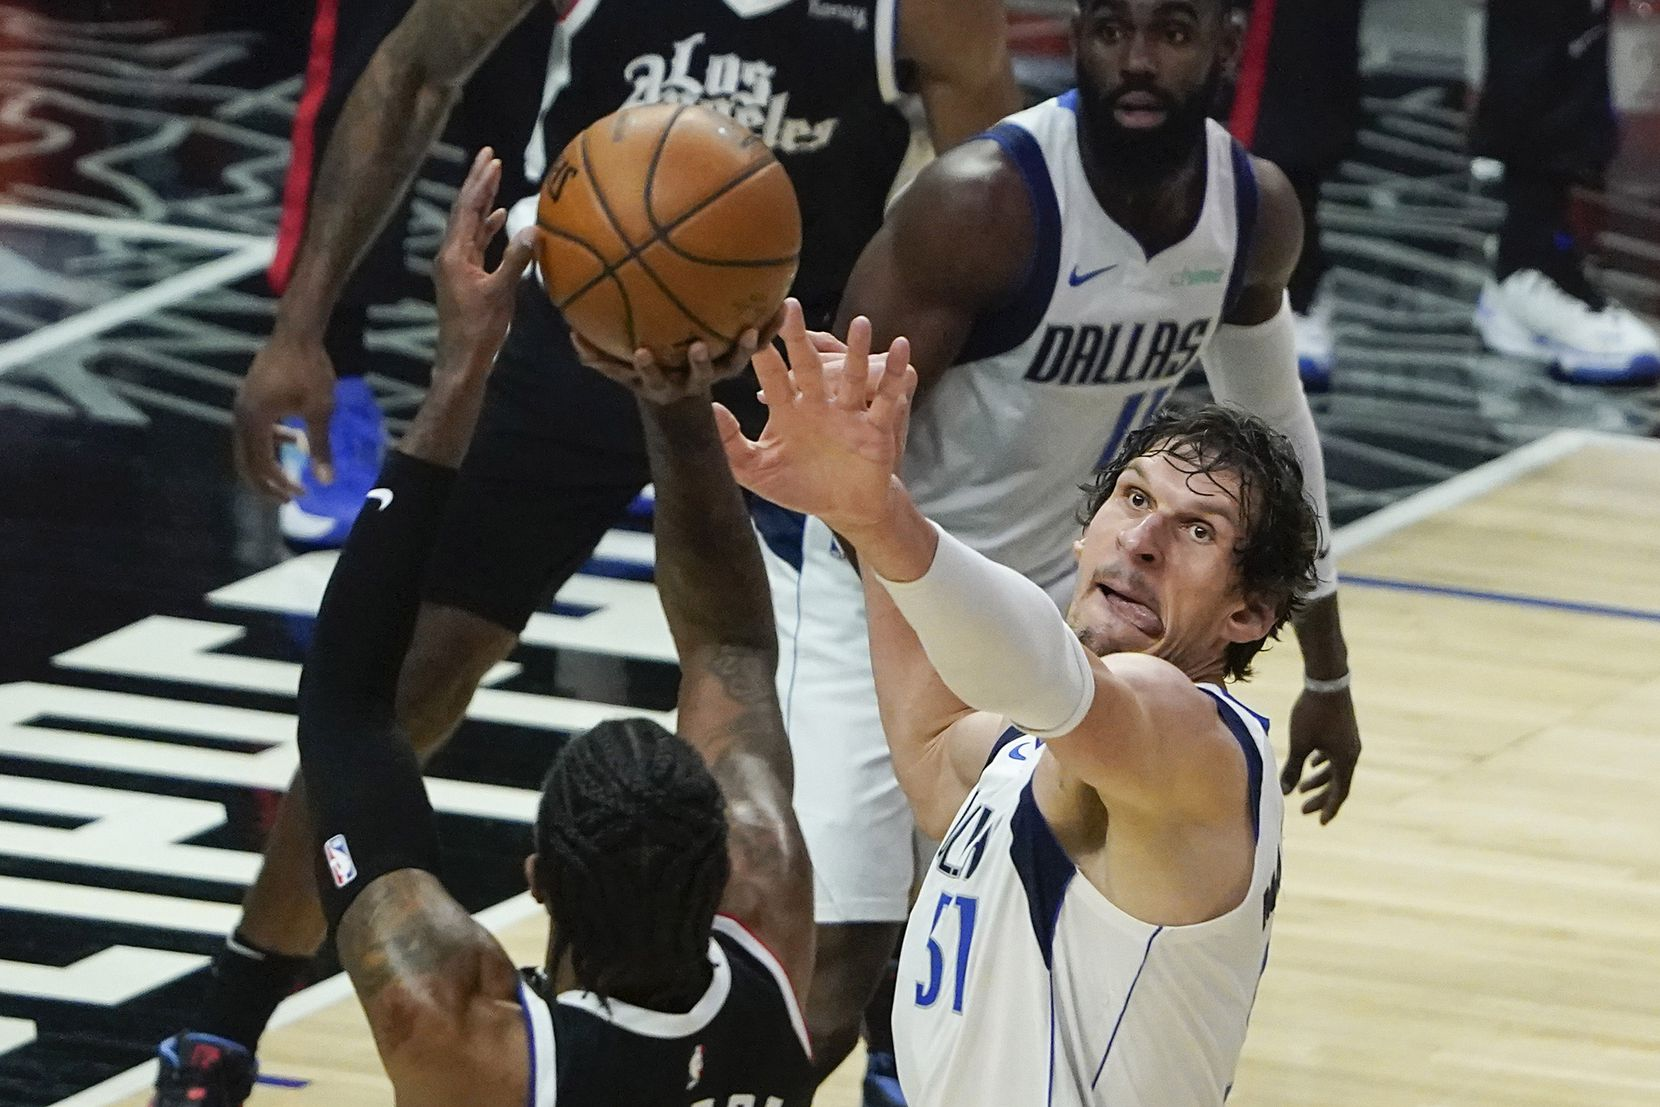 Dallas Mavericks center Boban Marjanovic (51) defends against LA Clippers guard Paul George (13) during the first quarter of an NBA playoff basketball game at the Staples Center on Wednesday, June 2, 2021, in Los Angeles.  (Smiley N. Pool/The Dallas Morning News)